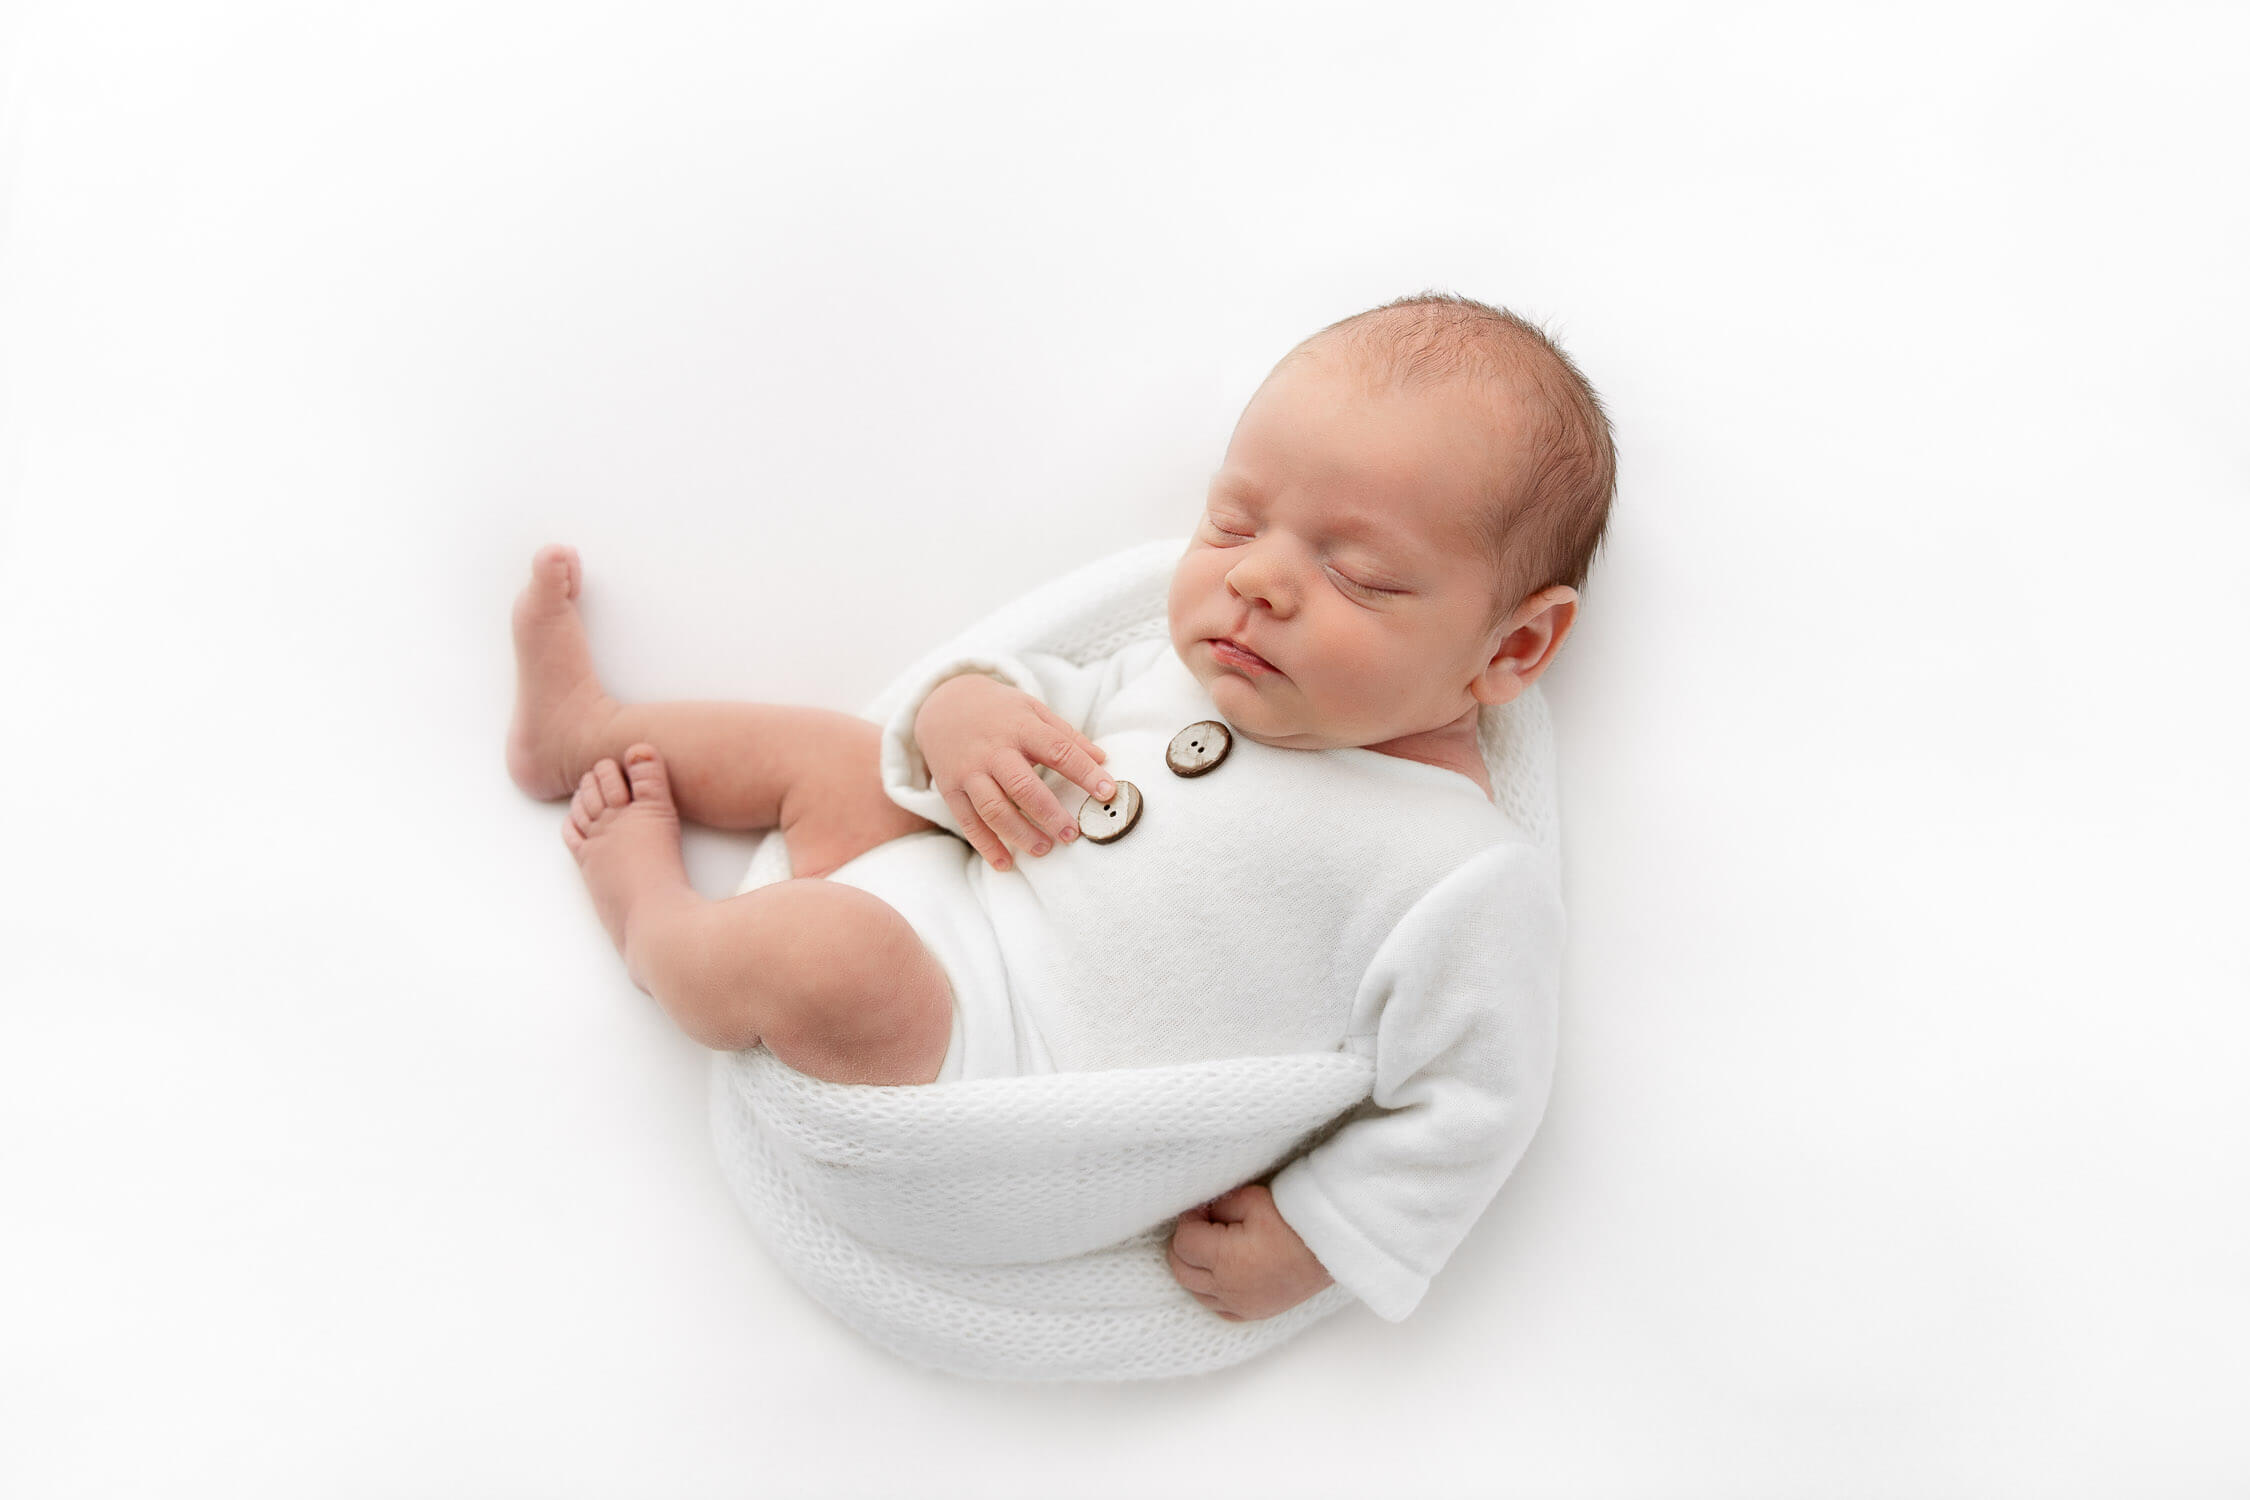 overhead image of baby boy wearing white romper sleeping on white fabric